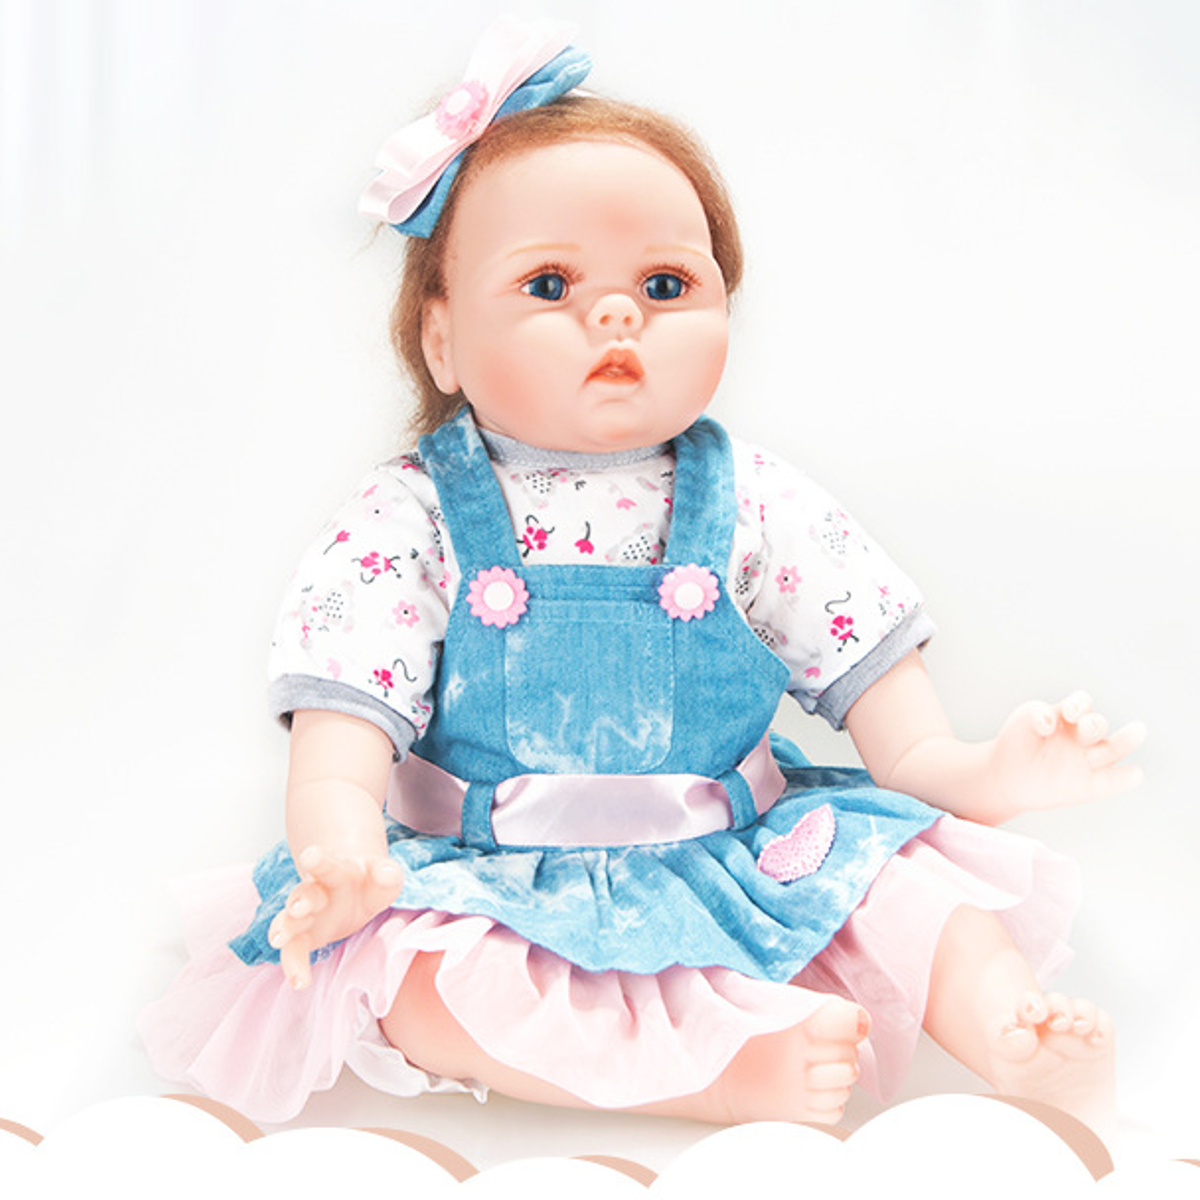 22'' 55cm Silicone Reborn Baby Dolls Lifelike Newborn Baby Girl Reborn Doll Handmade Vinyl Silicone Baby Dolls Children Kid Gift baby born dolls handmade doll bjd dolls reborn silicone baby dolls accessories lol kid toy gift kawaii brand dropshipping